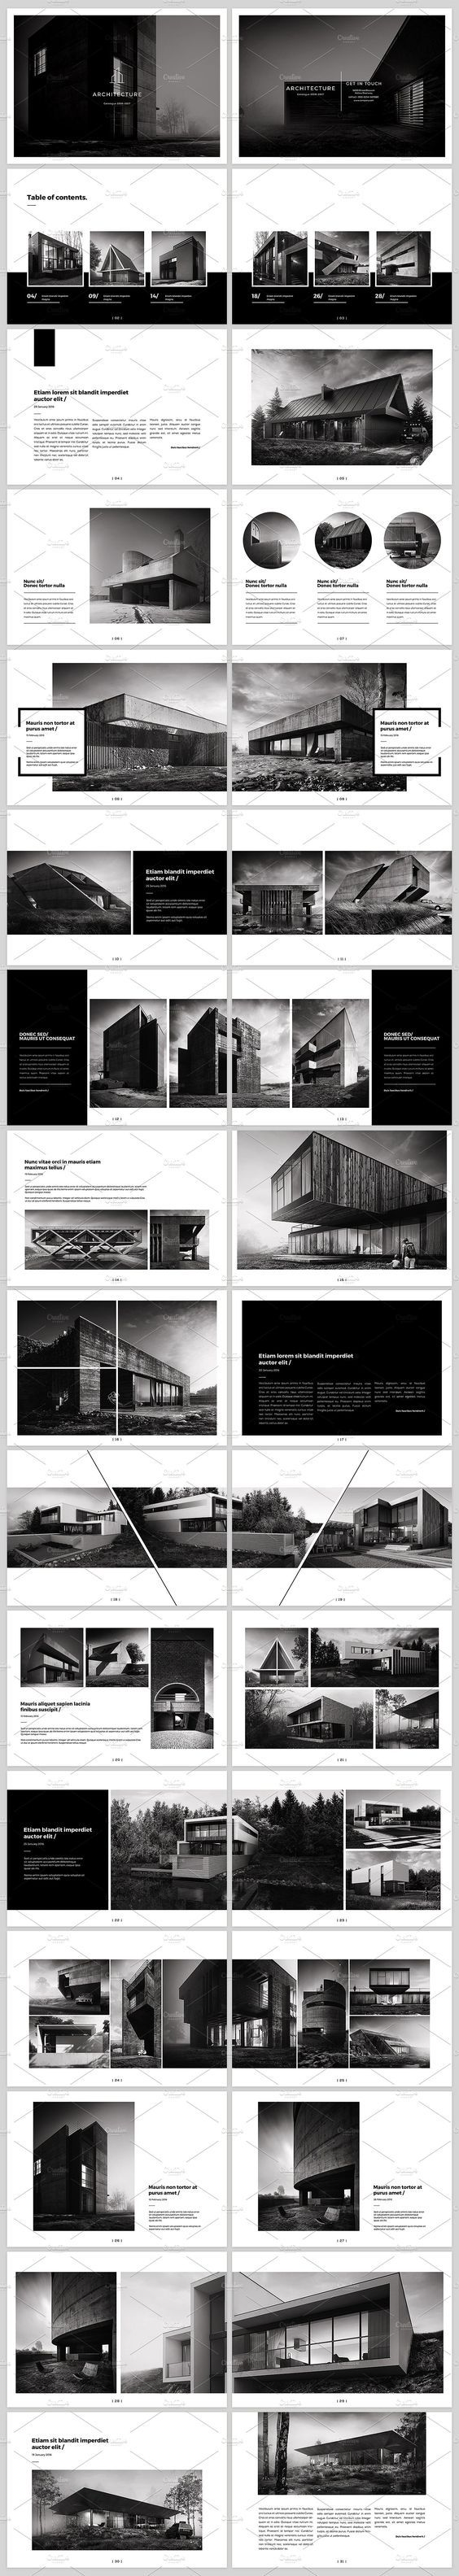 Architecture Landscape Brochure by ShapShapy on creativemarket